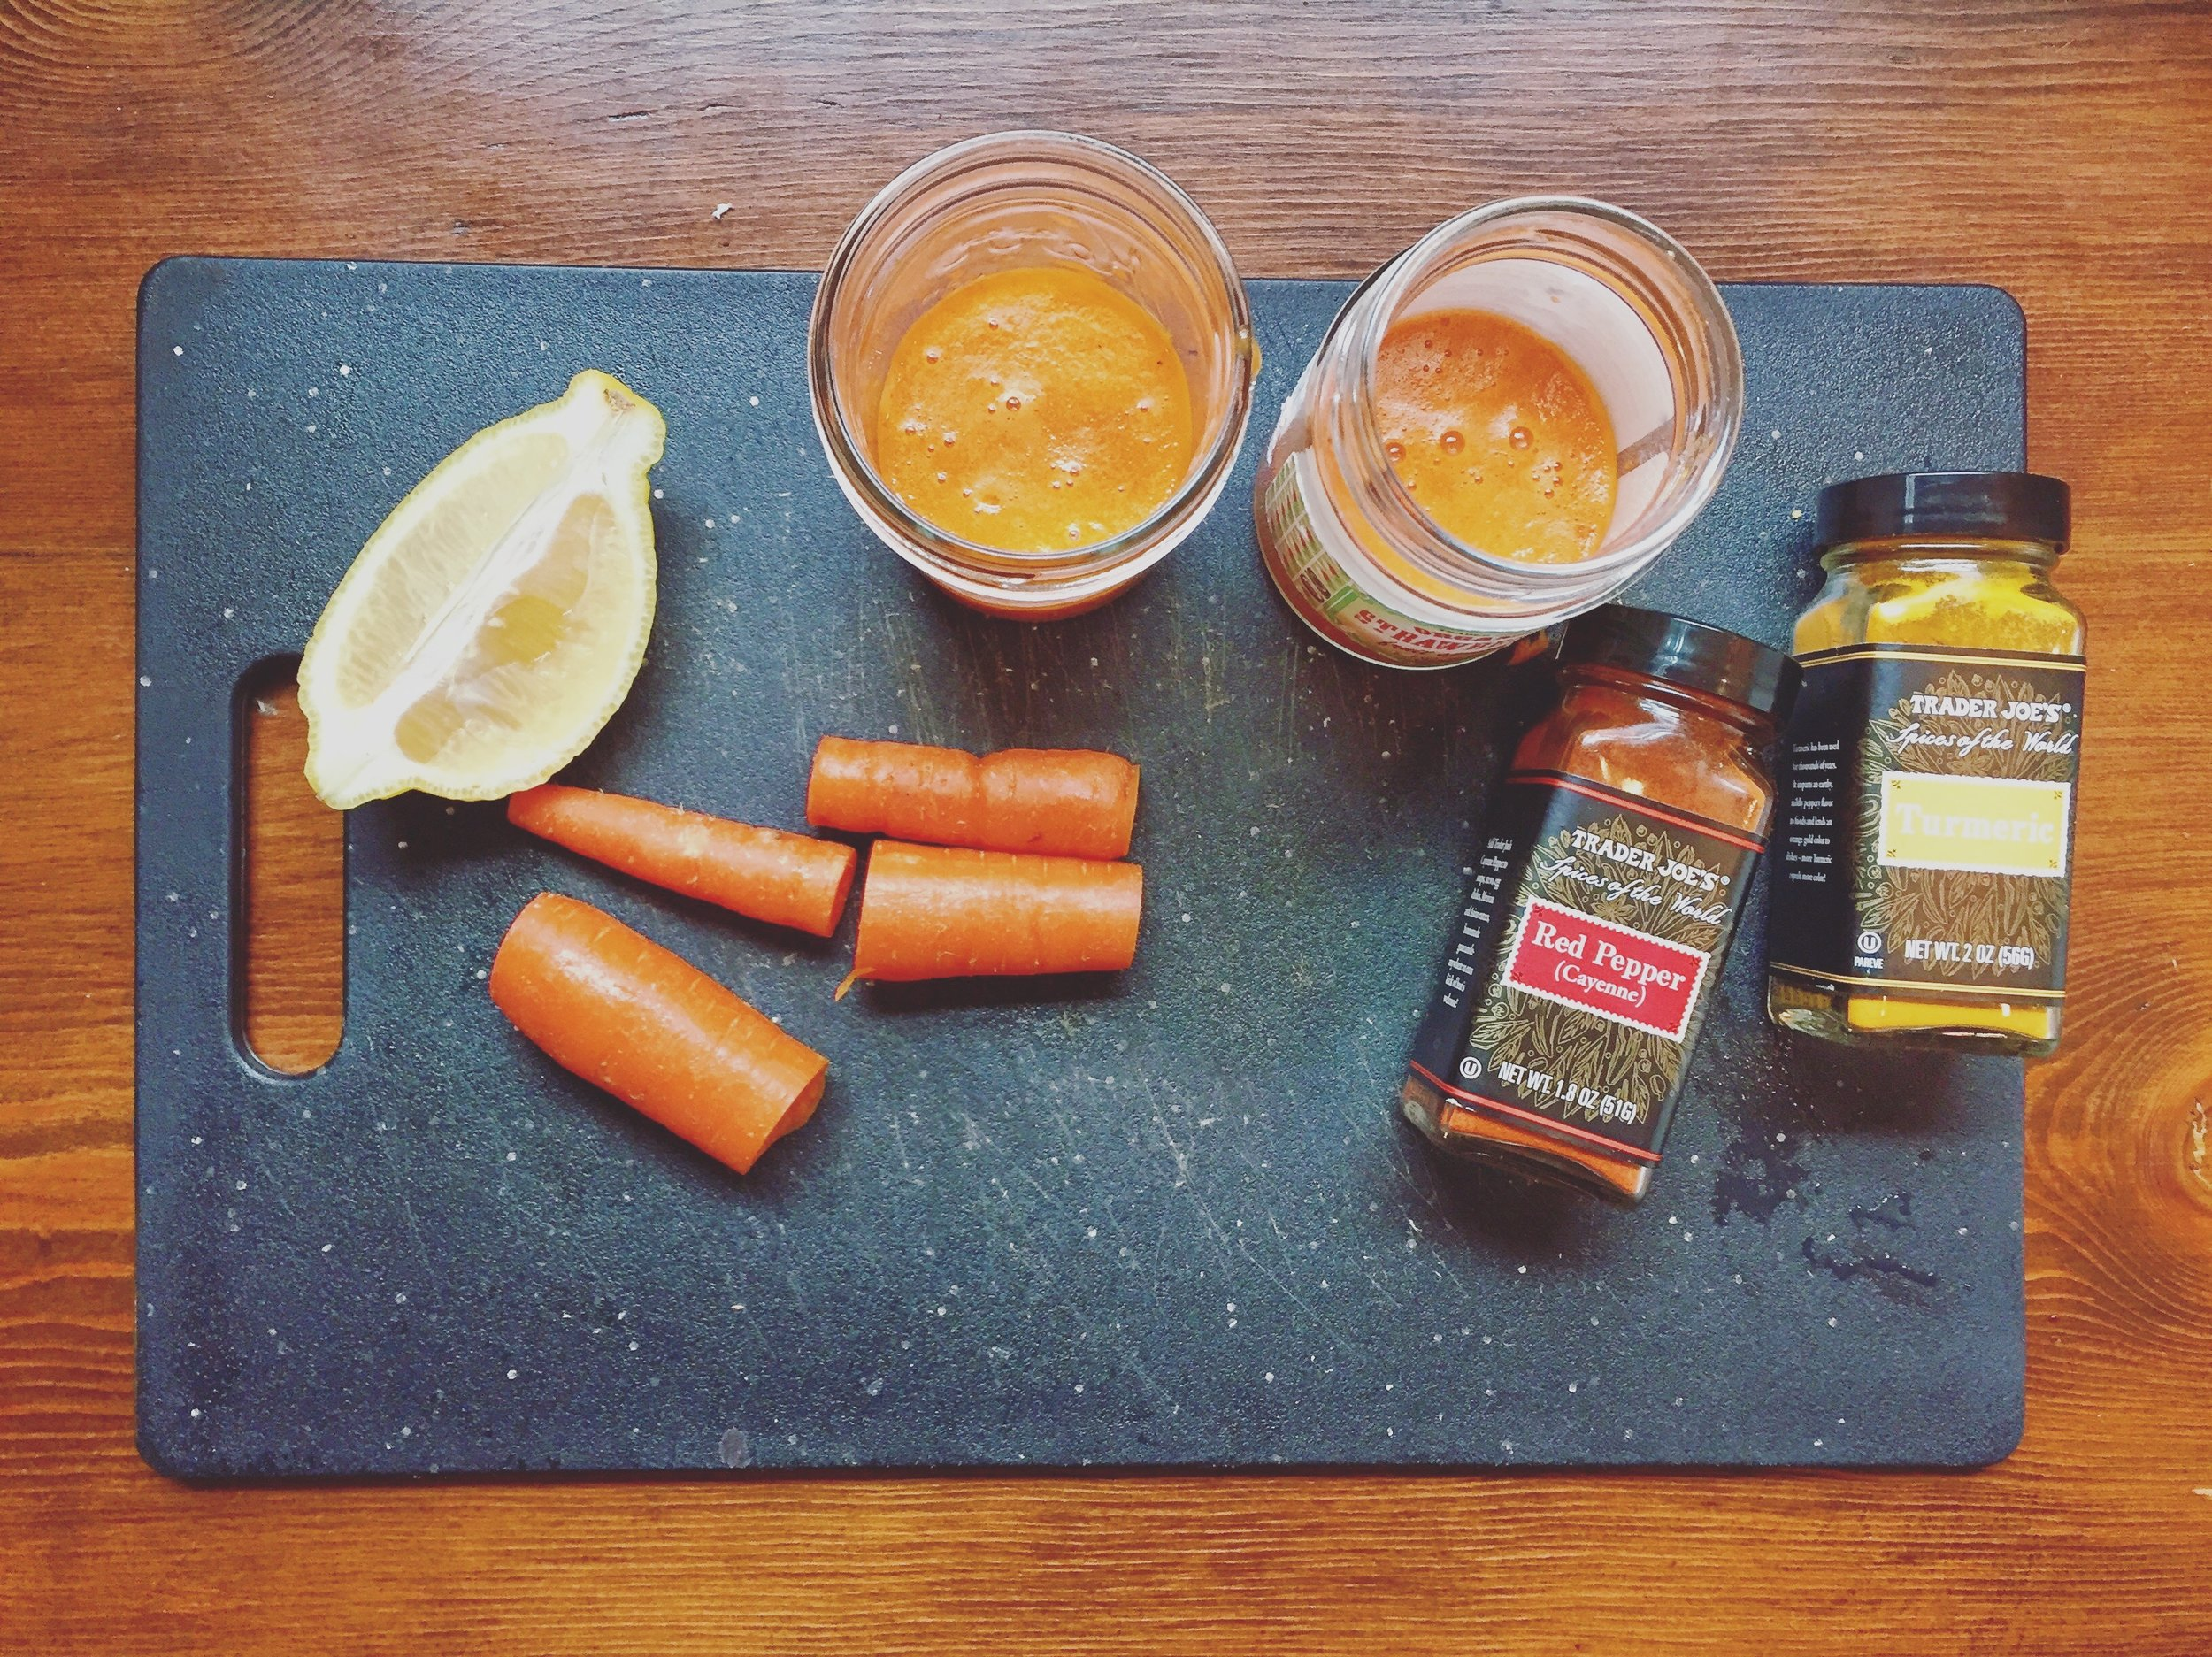 CARROT GINGER COLD KICKER - 1 TBS GROUND GINGER, 1 TBS GROUND CAYENNE PEPPER, 1 TBS GROUND TURMERIC, 2 WHOLE CARROTS, 1/2 SQUEEZED LEMON, 1 TBS HONEY, 1/2 SQUEEZED ORANGE JUICE BLEND (OR JUICE) CARROTS, ORANGE, & LEMON. ADD GINGER, CAYENNE, & TURMERIC. BELND/MIX WELL. ADD HONEY & TAKE IT FAST!